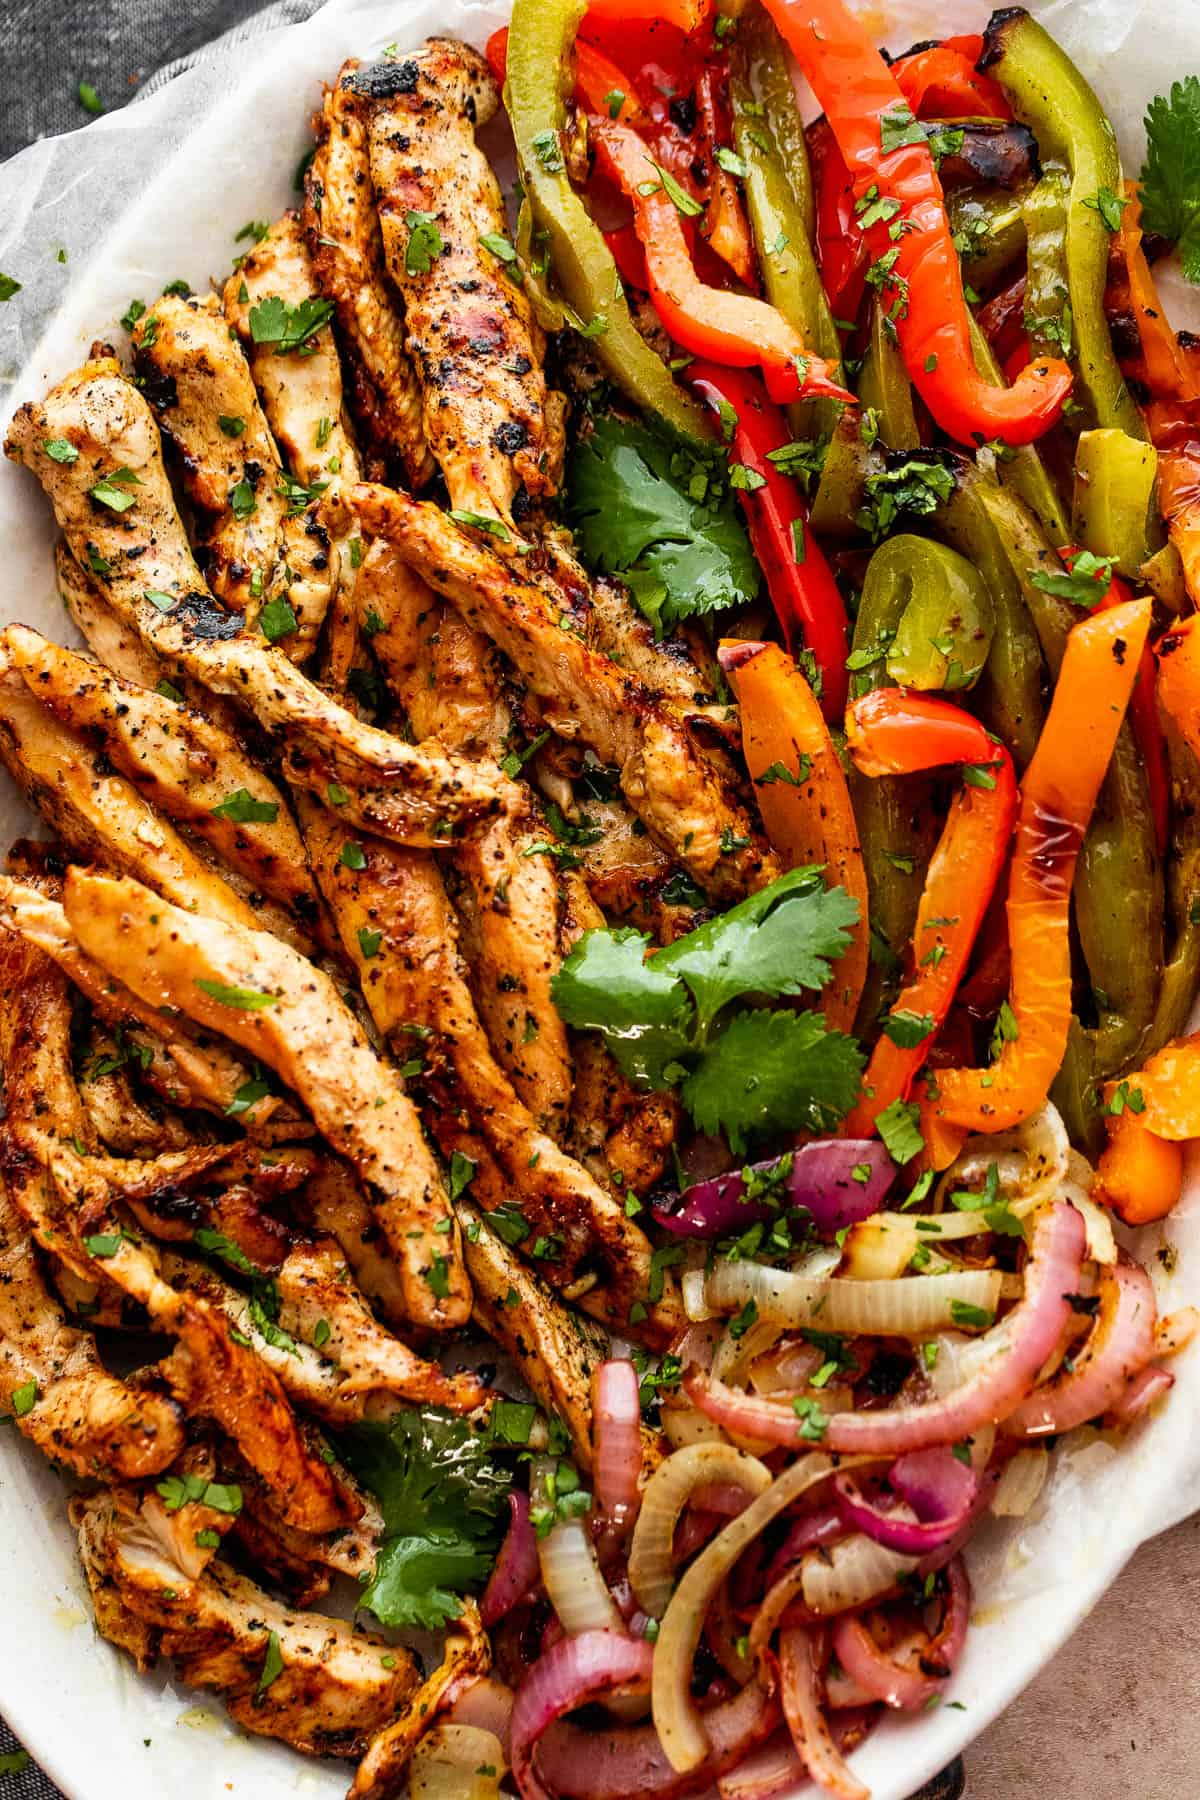 grilled chicken fajitas with chicken strips, colorful bell pepper strips, and onions on a serving plate garnished with cilantro leaves